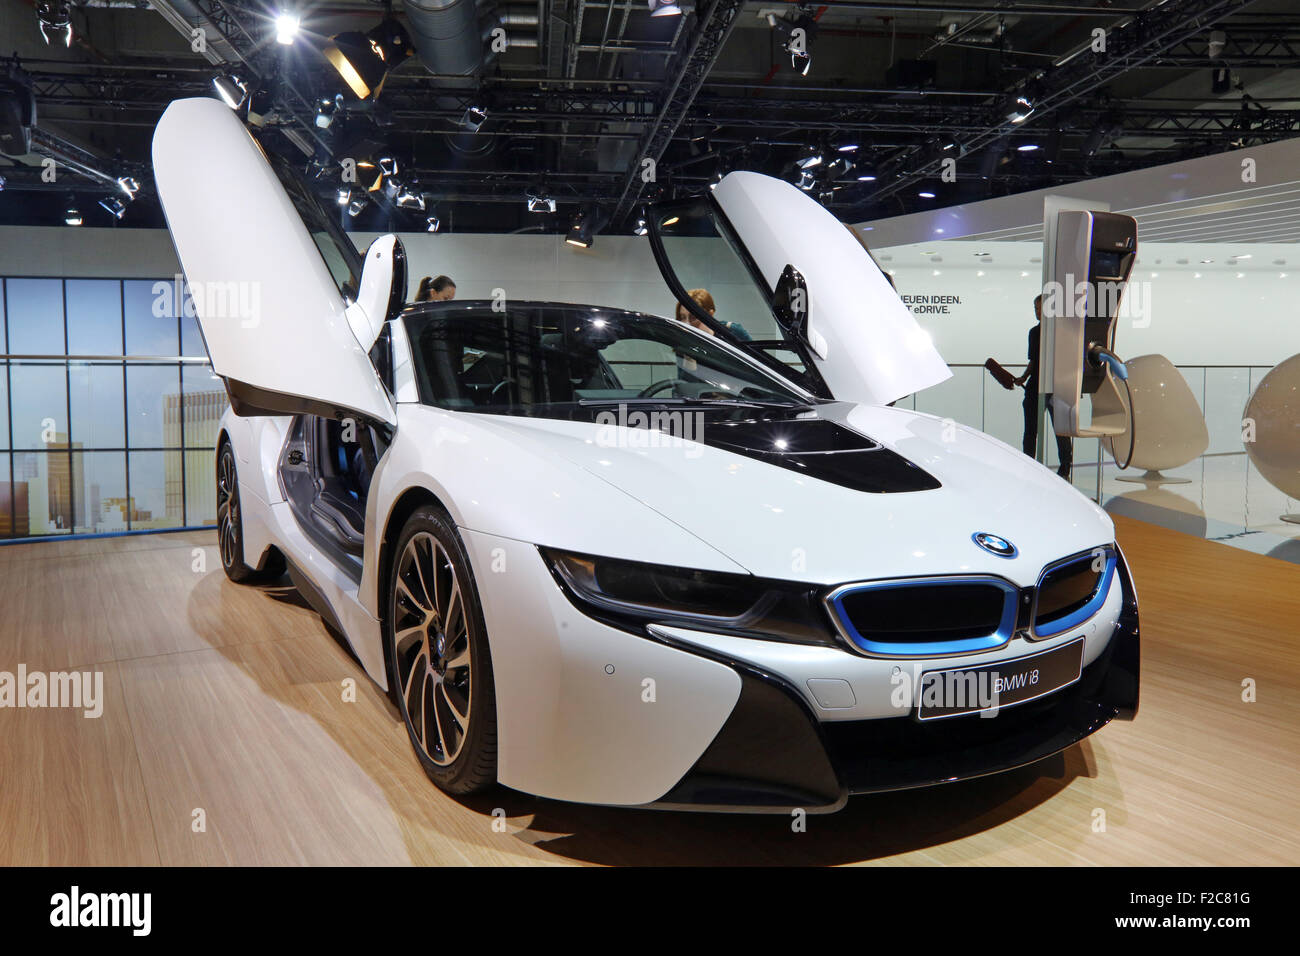 Francfort/M, 16.09.2015 - concept car hybride BMW i8 au stand BMW à la 66e International Motor Show (IAA 2015 Photo Stock